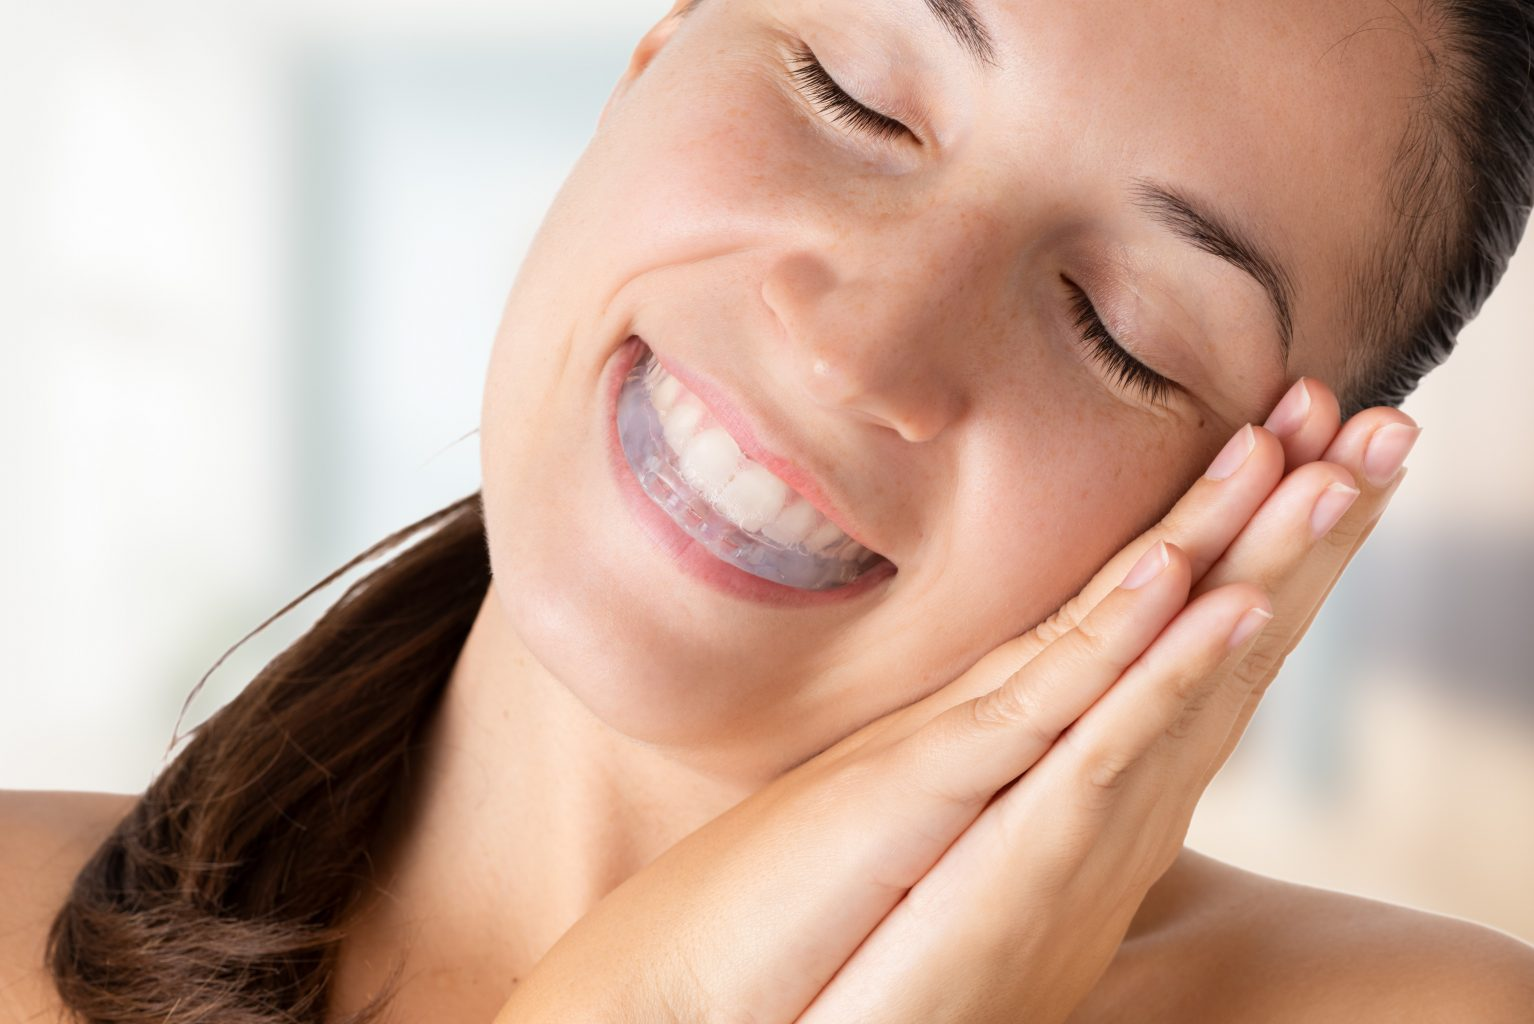 young woman making sleep gesture and wearing bite plate in mouth to save teeth from grinding caused by bruxism. woman sleeps peacefully thanks to the bite plate that protects her teeth from bruxism.